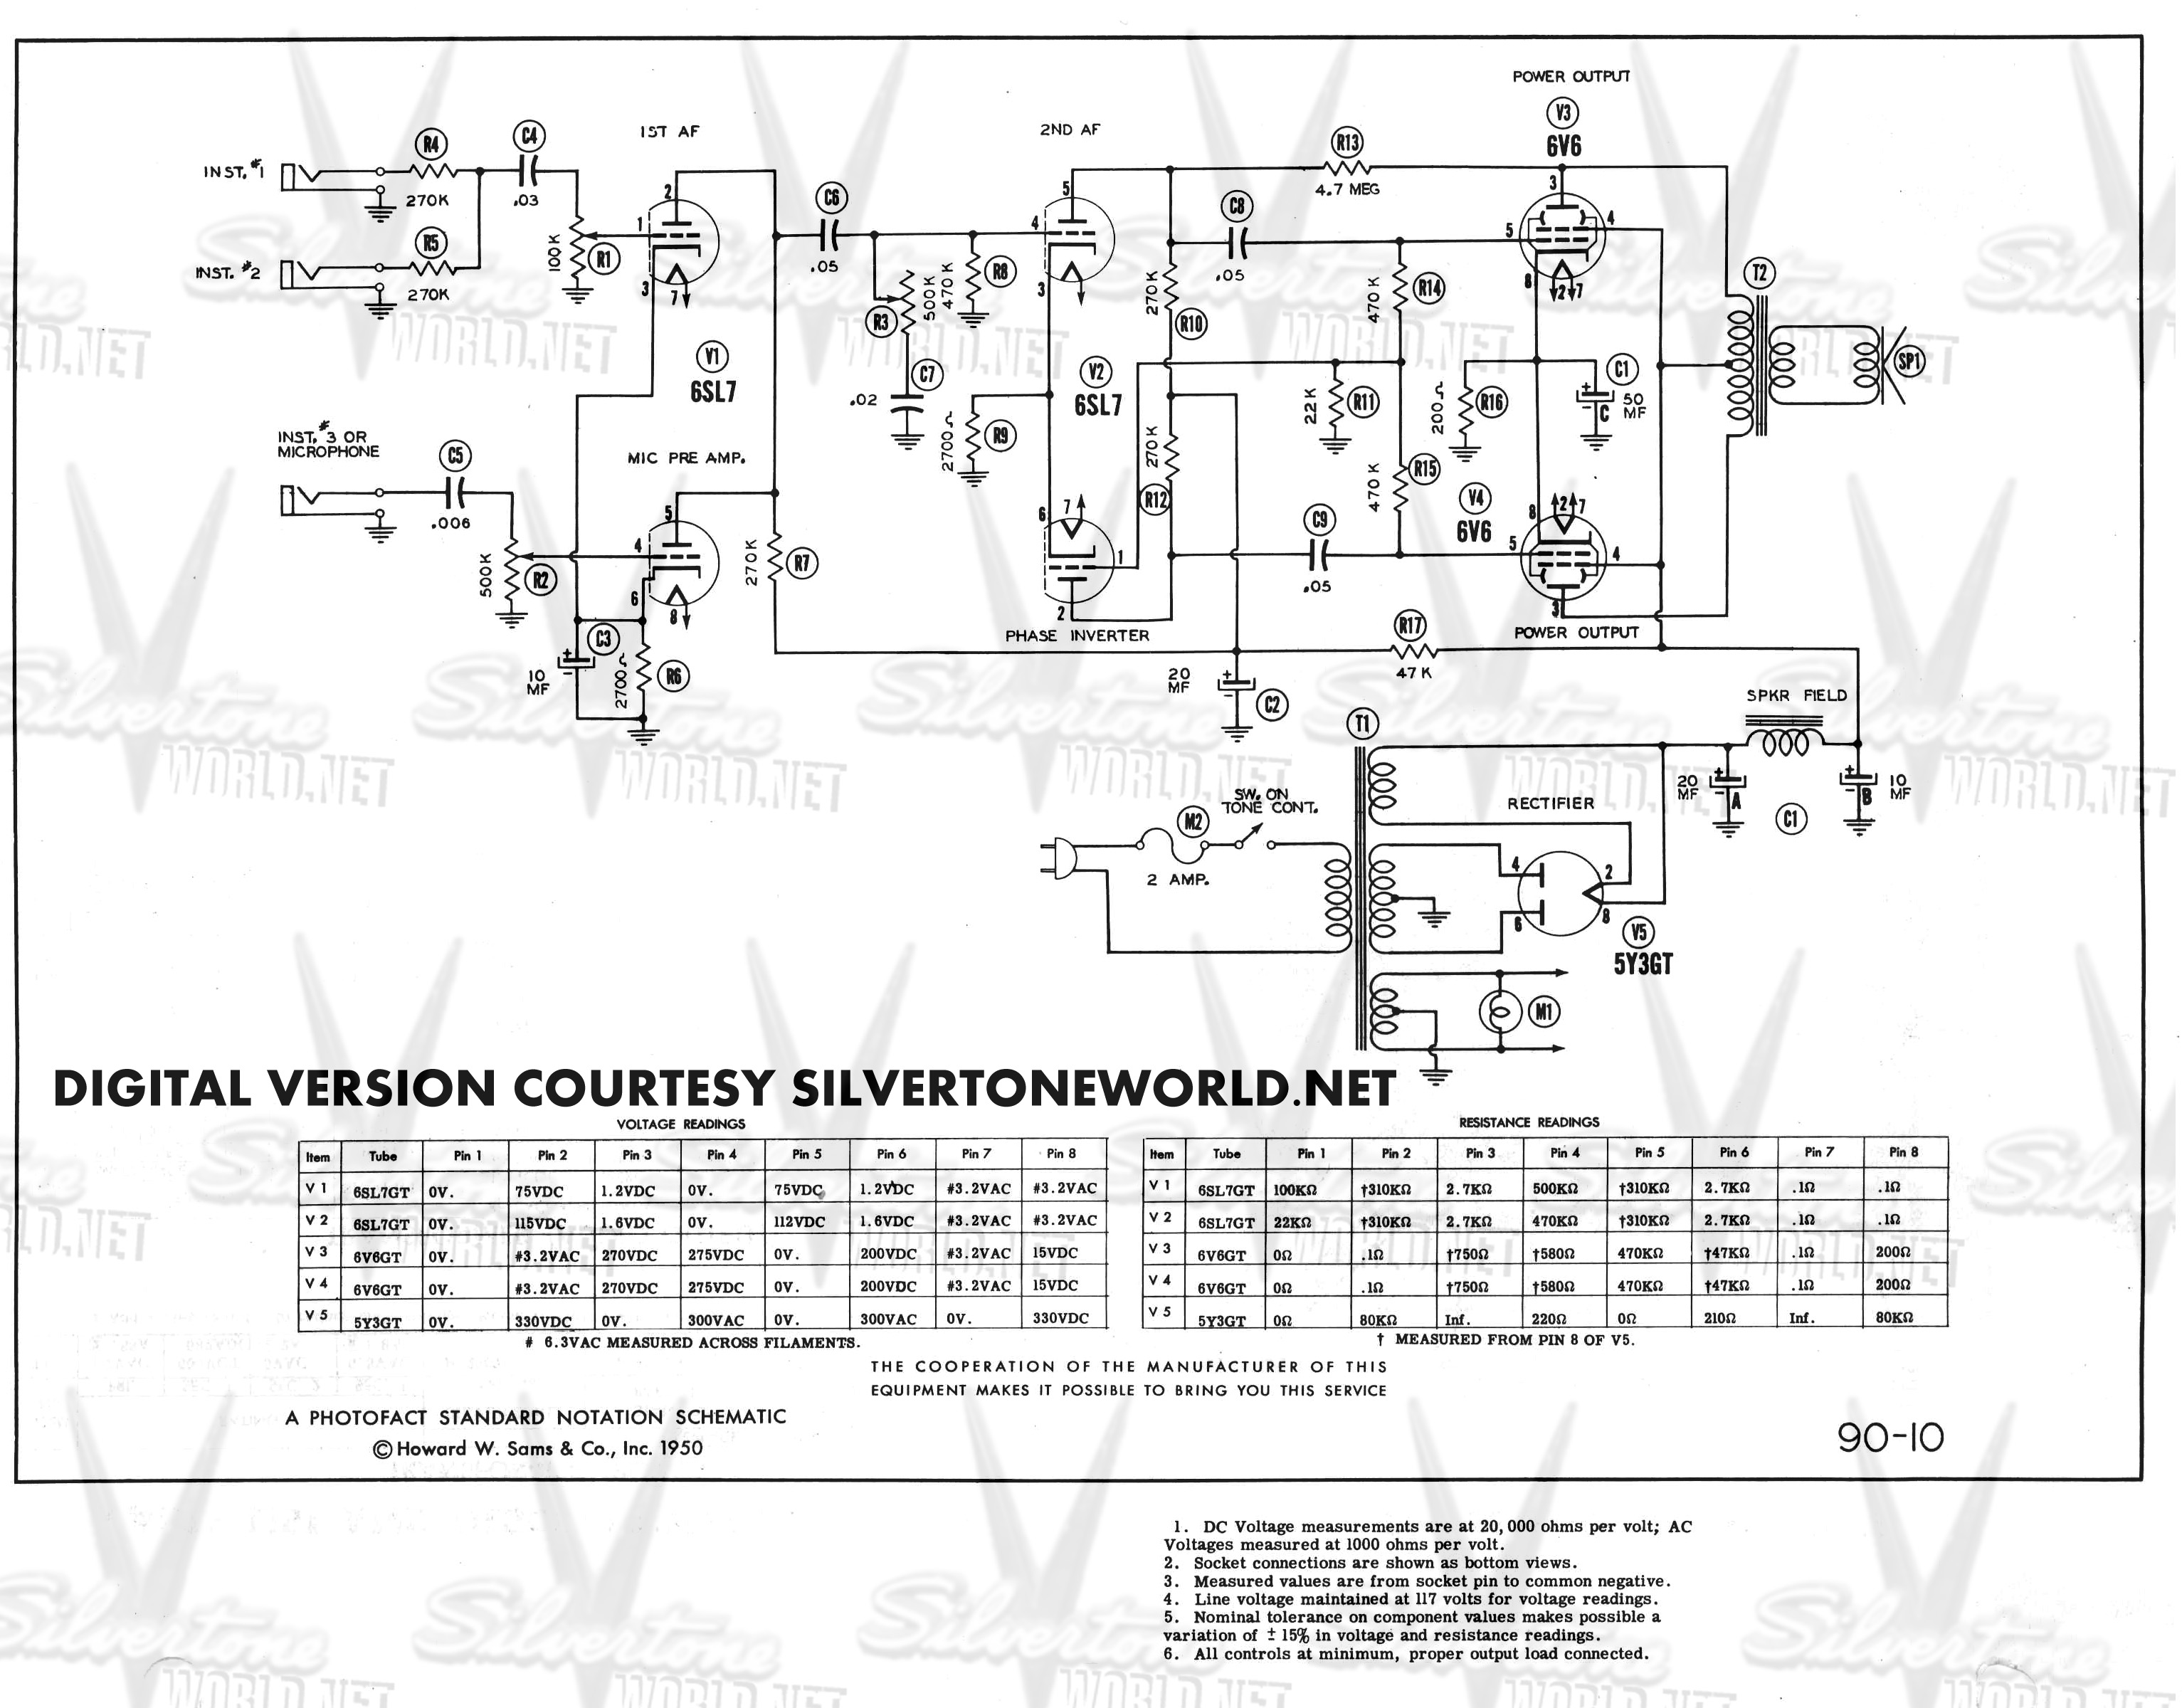 silvertone world division 57 schematics, manuals and publications Jbl Wiring Diagram silvertone wiring diagram  #10 Pressure Switch Wiring Diagram